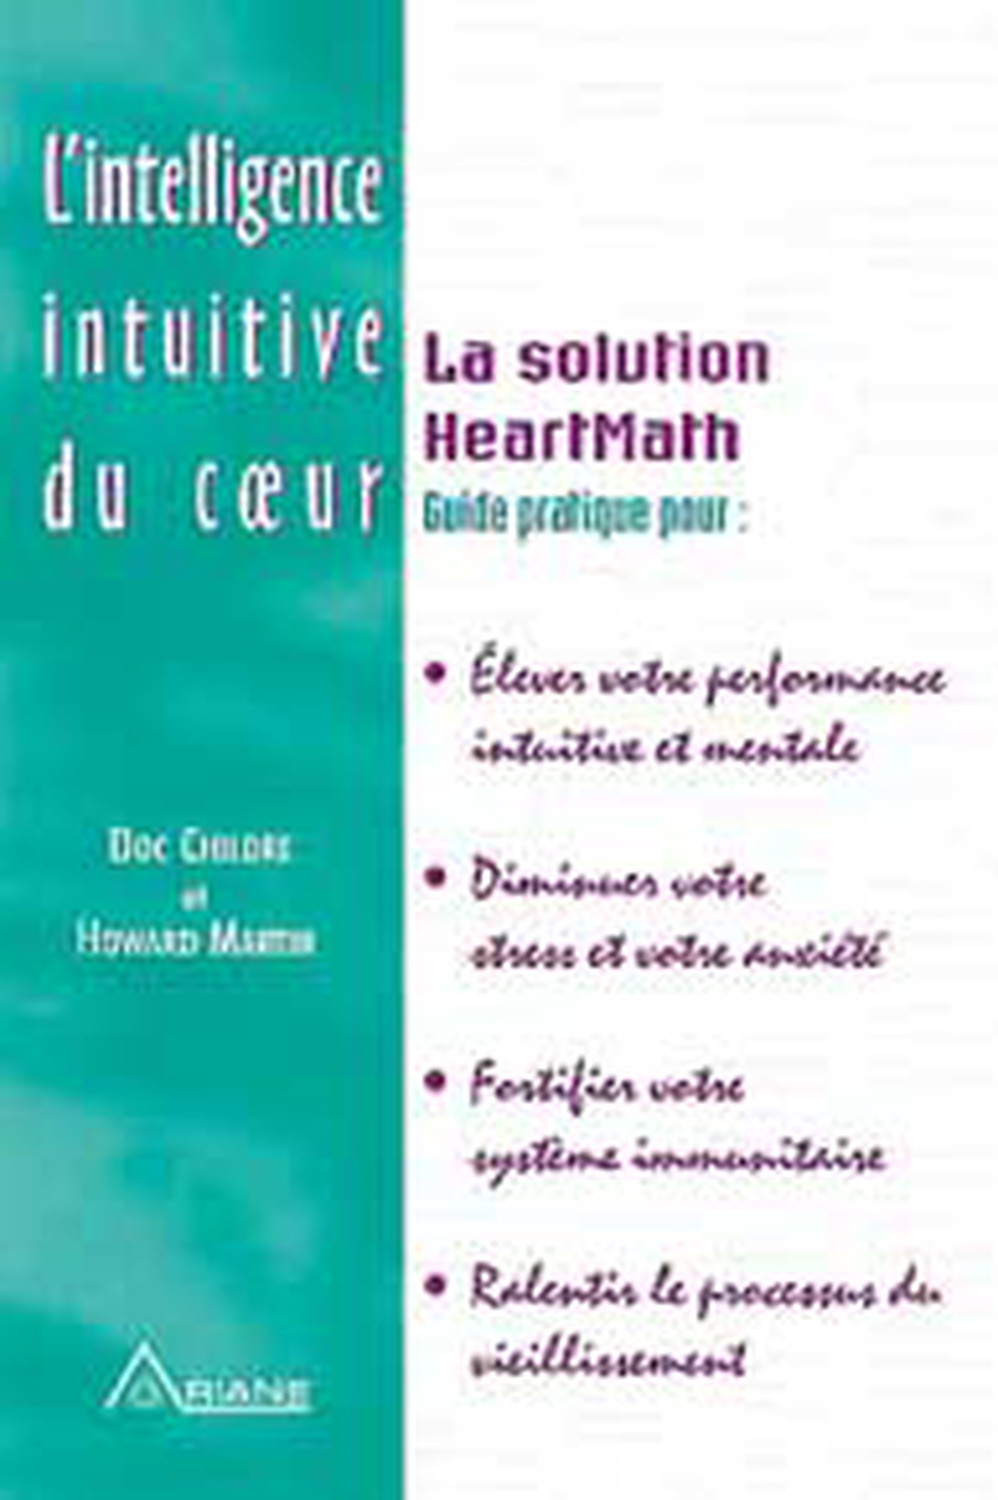 INTELLIGENCE INTUITIVE DU COEUR - HEARTMATH